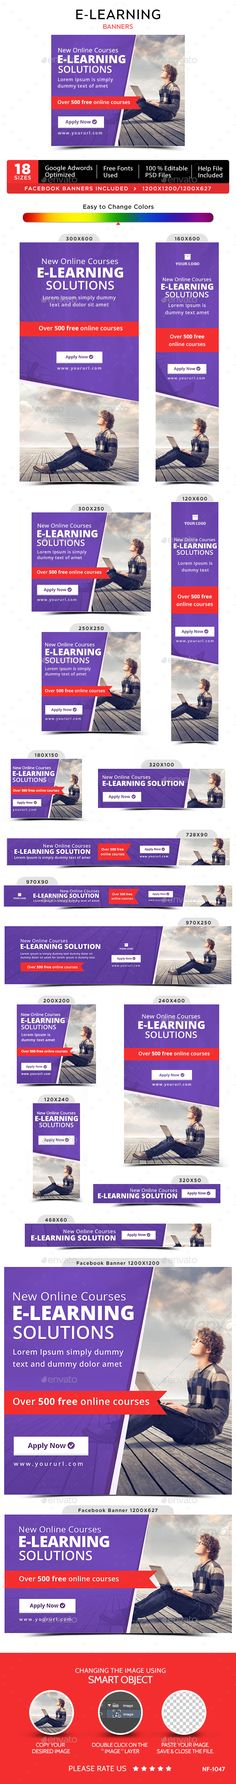 E-Learning Web Banners Template PSD. Download here: http://graphicriver.net/item/elearningbanners/14830526?ref=ksioks